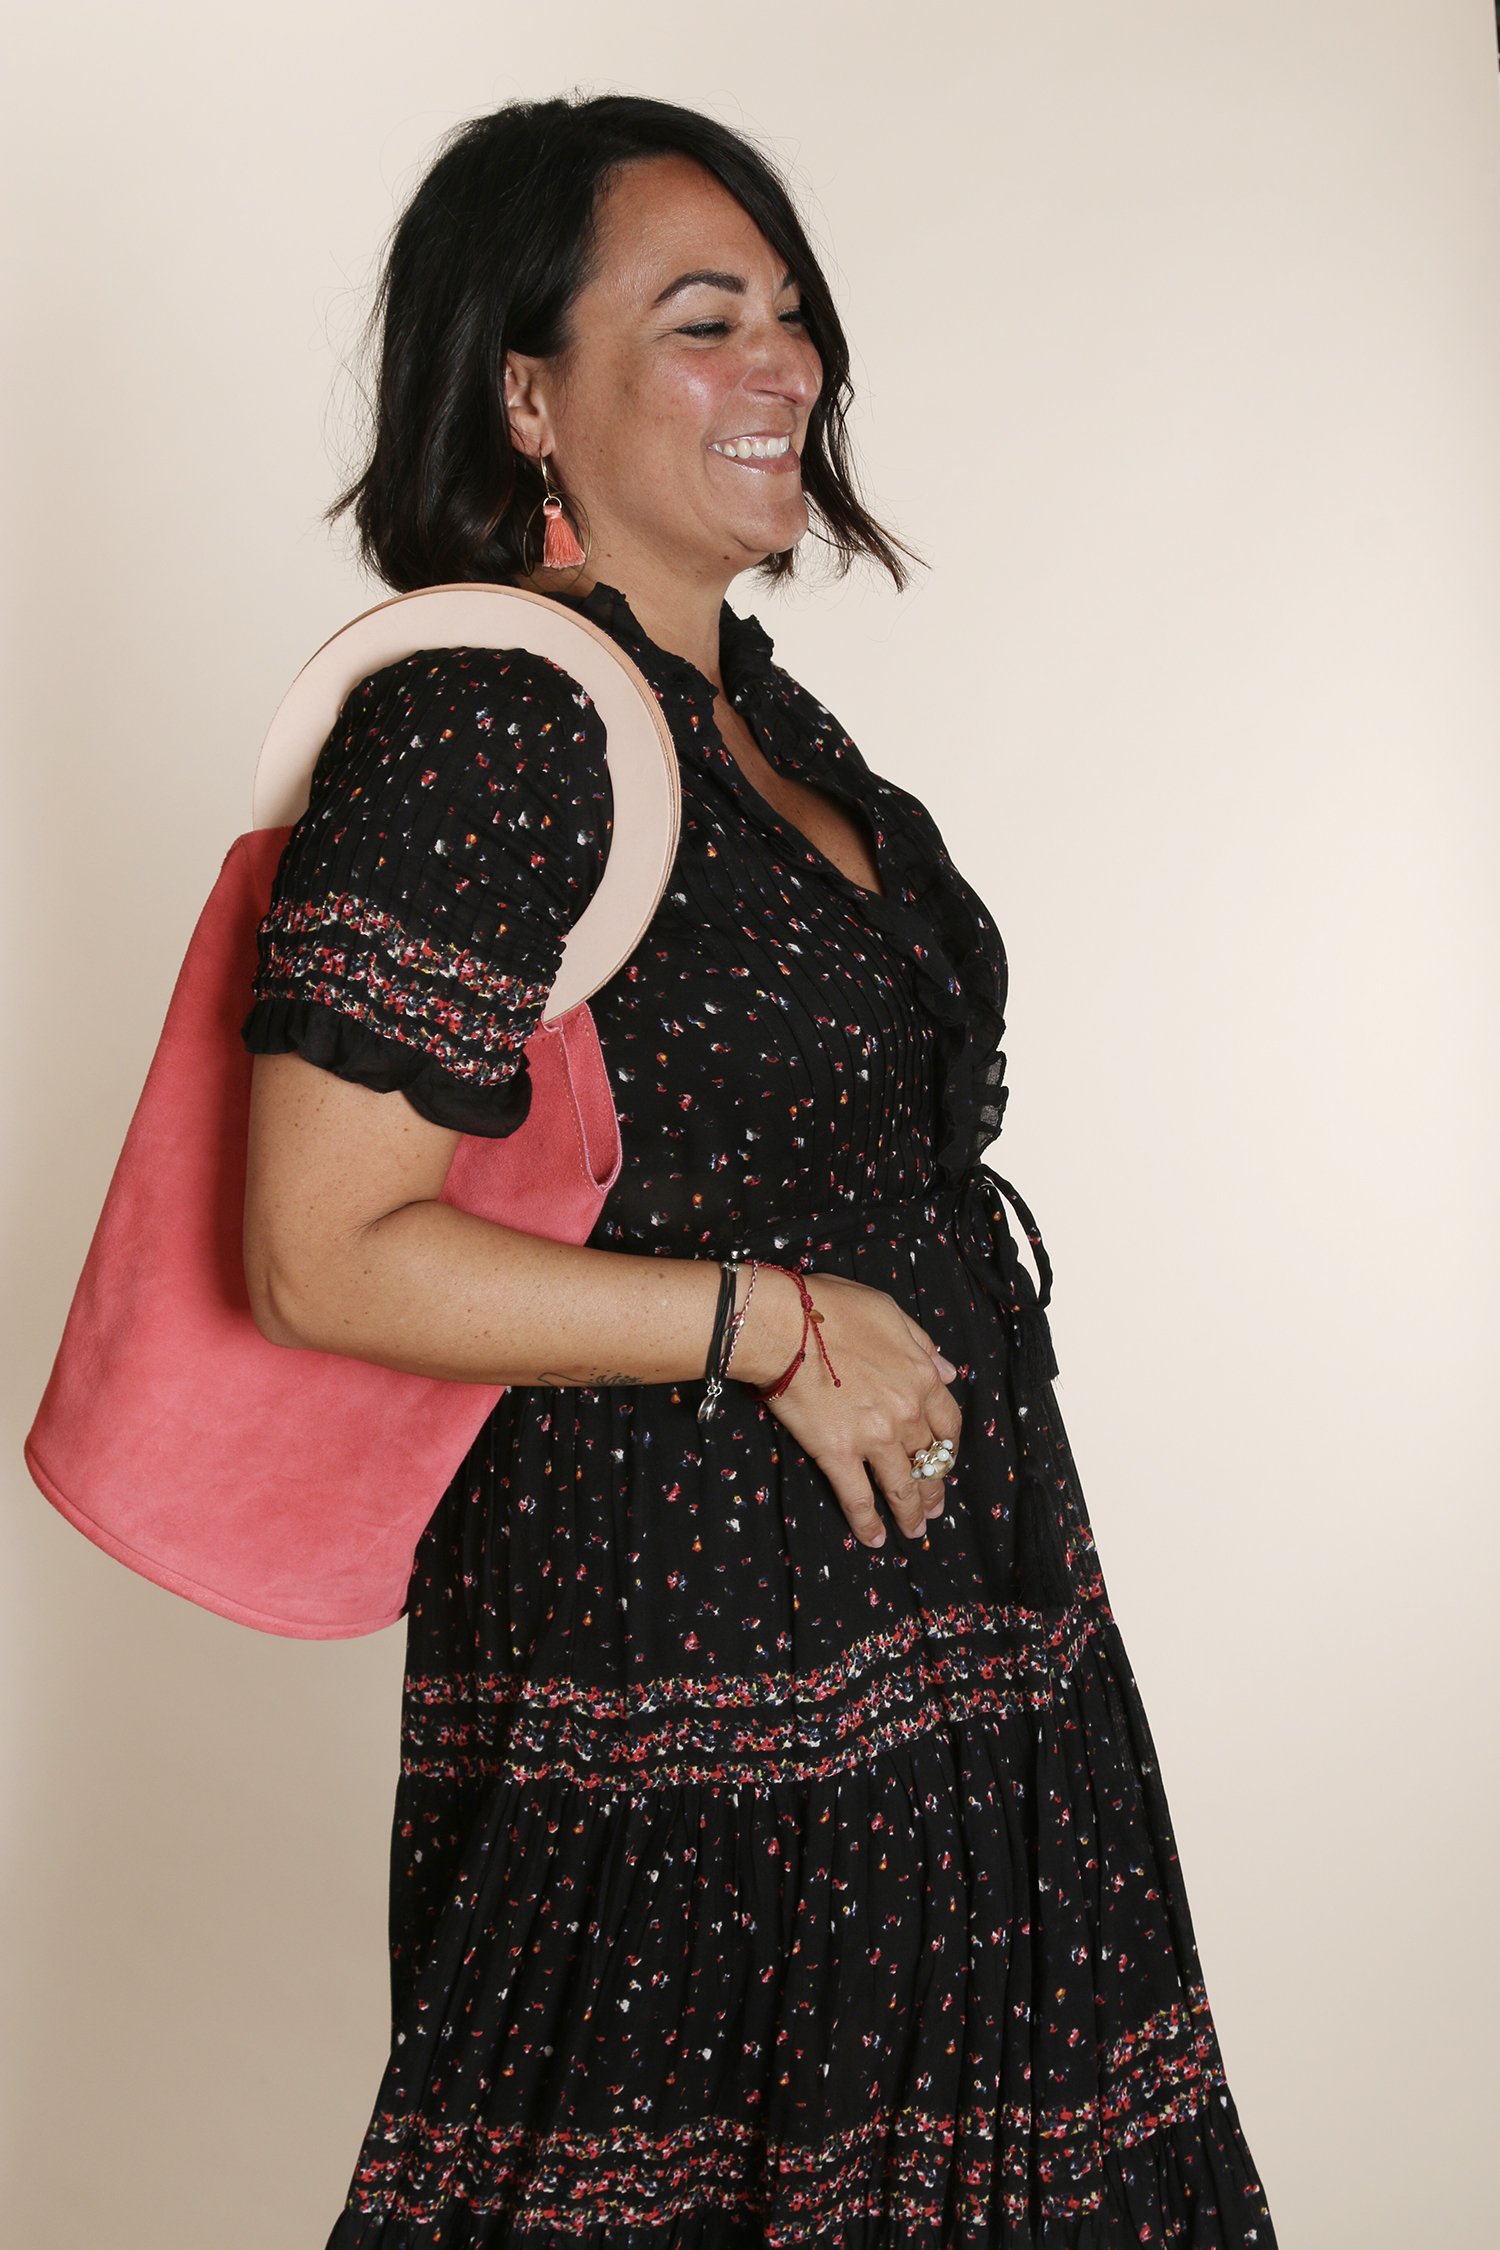 Susi, her contagious smile, HoneyBird coral tassel earrings, and our suede tote